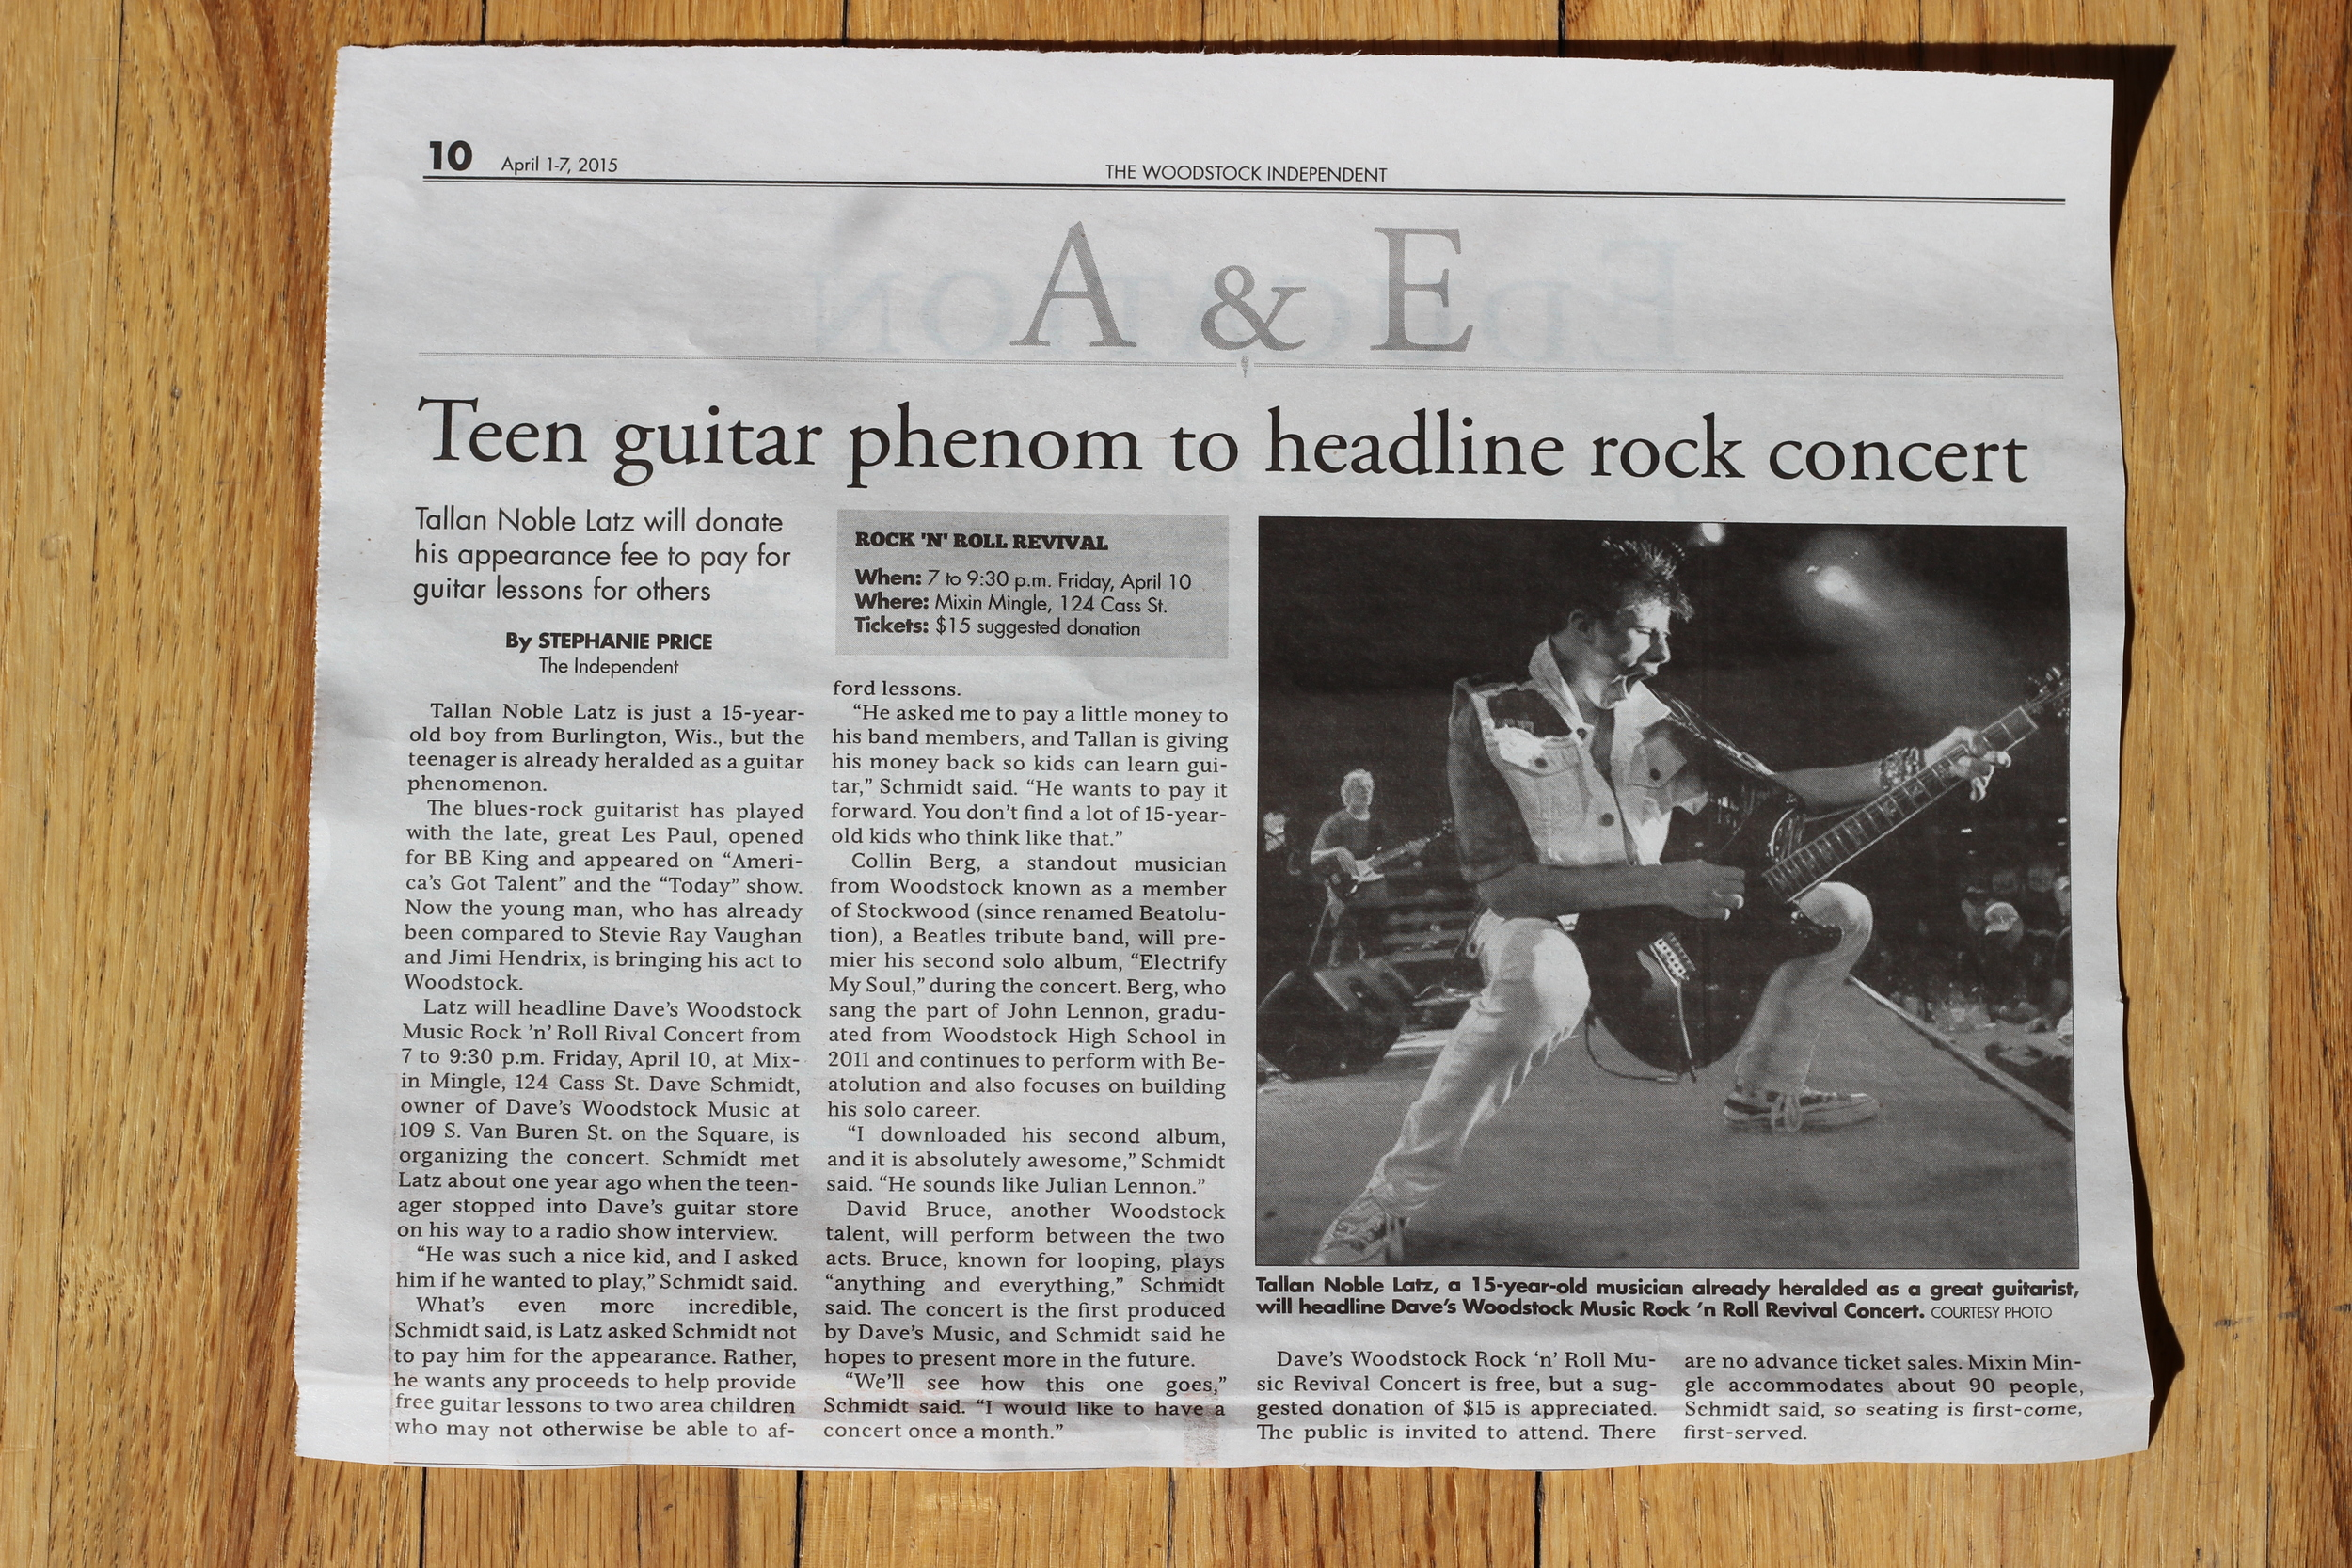 Click here  to visit The Woodstock Independent for the online version of this article.